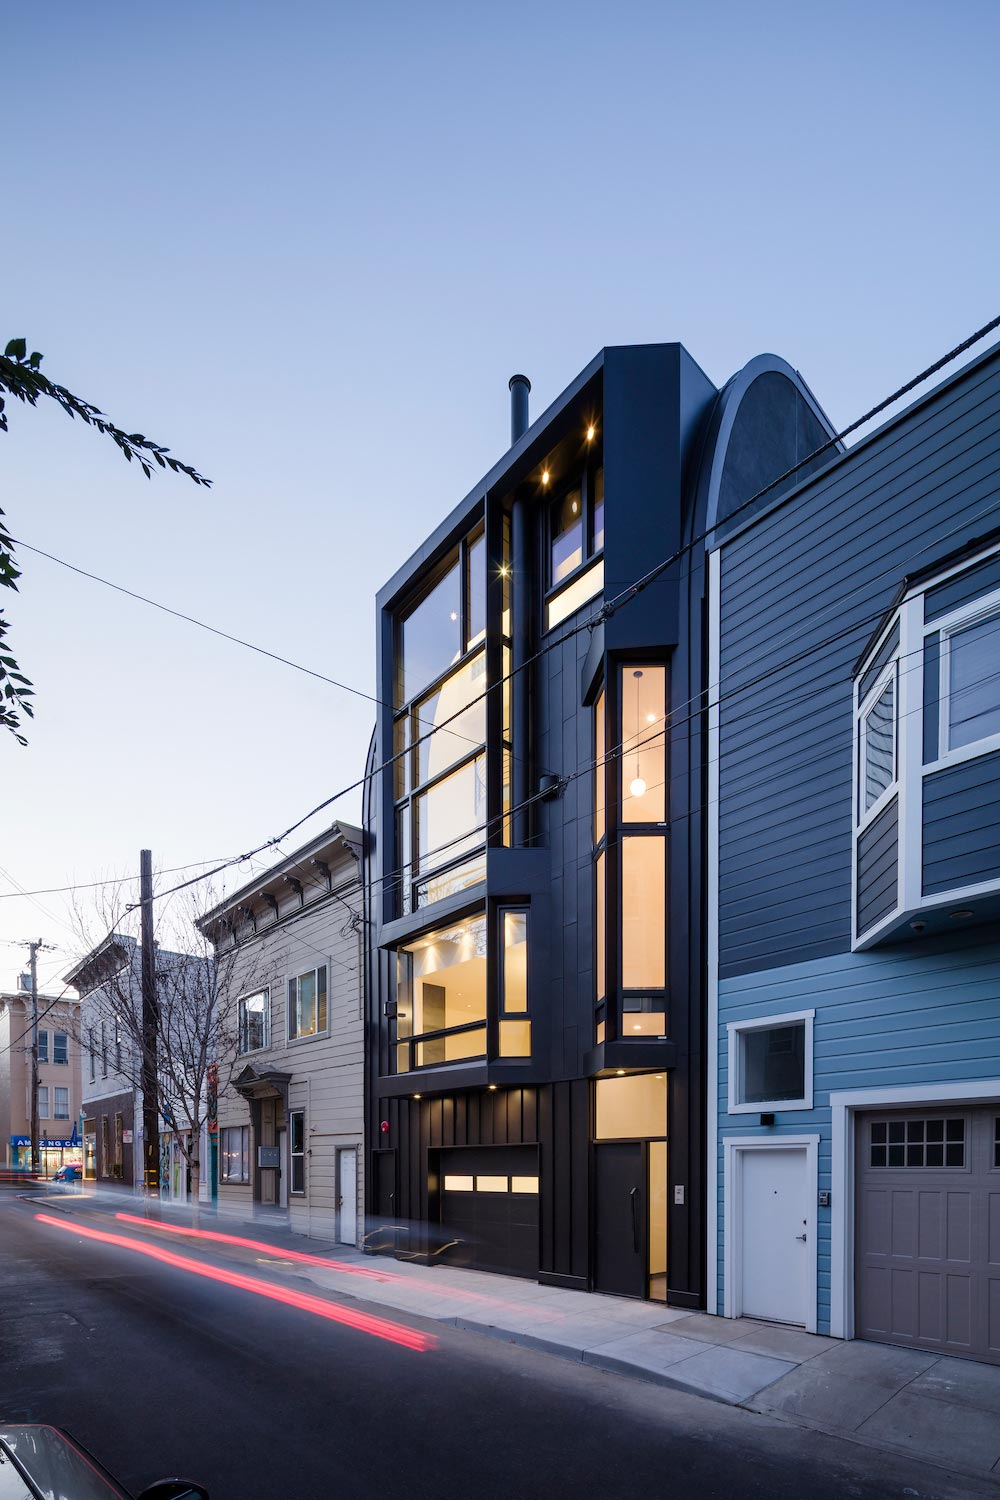 Black Mass apartment building designed by Stephen Phillips Architects plays with viewer perception to create dramatic visual and spatial effects